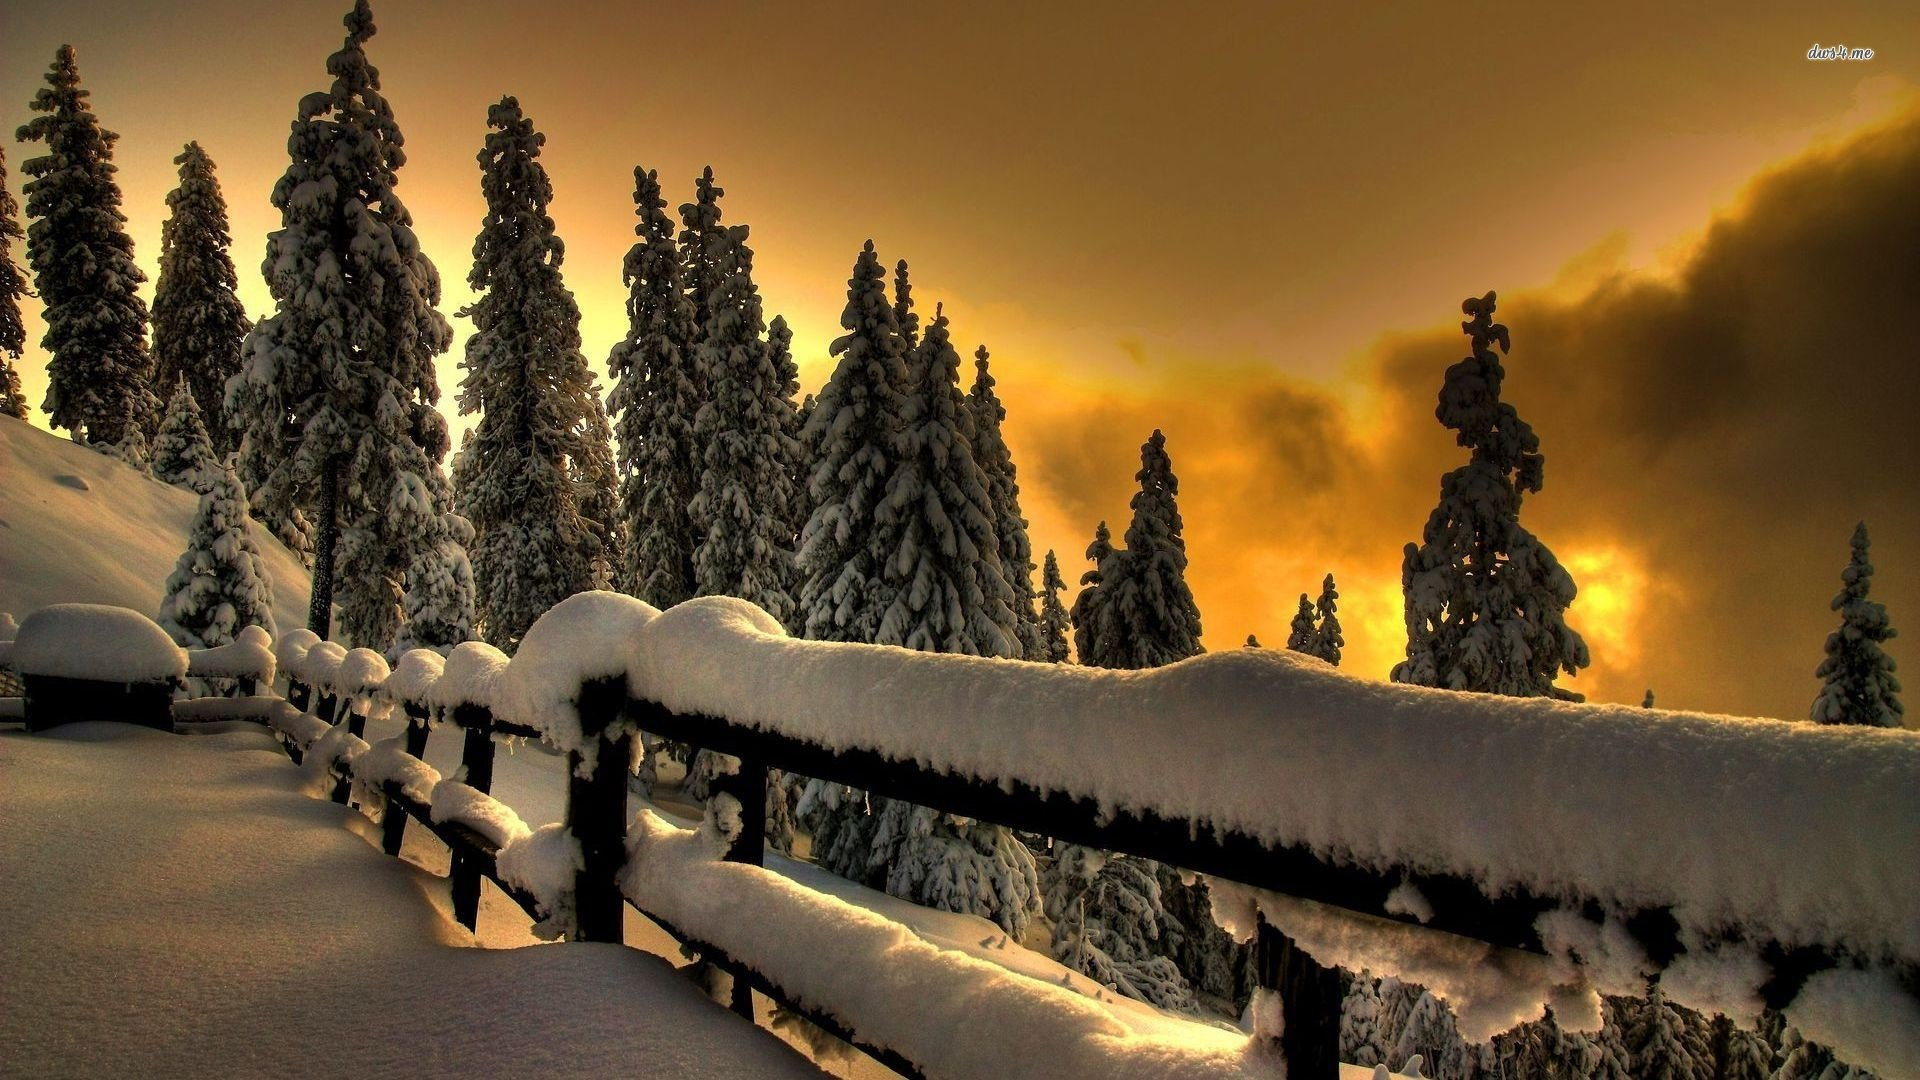 1920x1080 Winter Sunset Desktop Backgrounds Winter sunset .